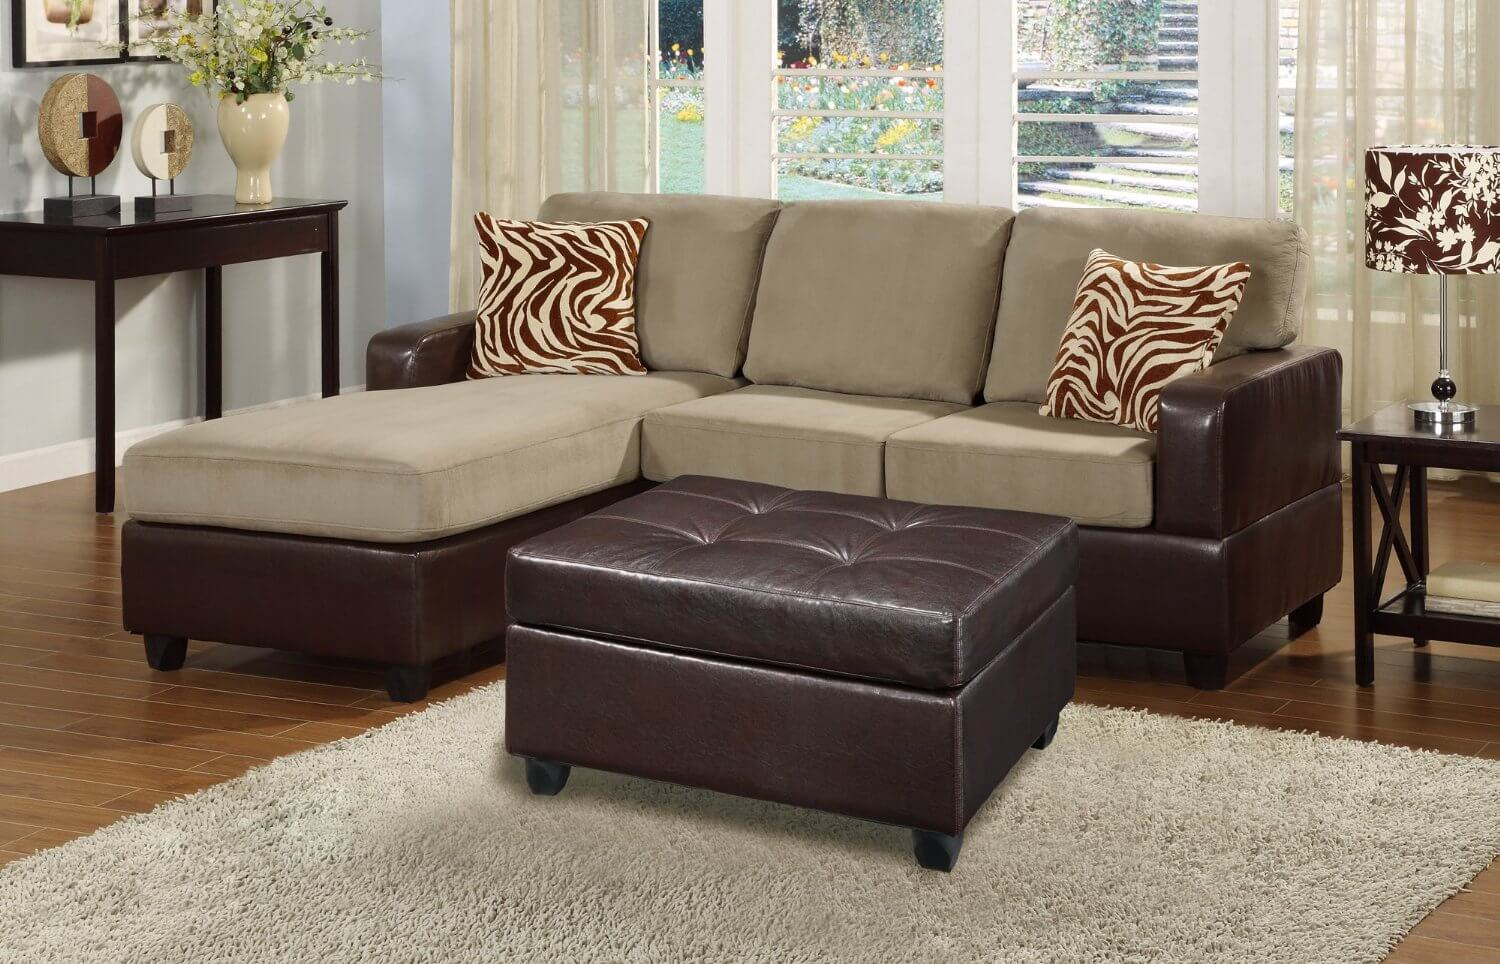 This contemporary three-piece sectional sofa has plush reversible microfiber cushions in a beige/gray color and comes with two zebra accent pillows and a faux leather cocktail ottoman. The chaise can be switched from the left to the right side.